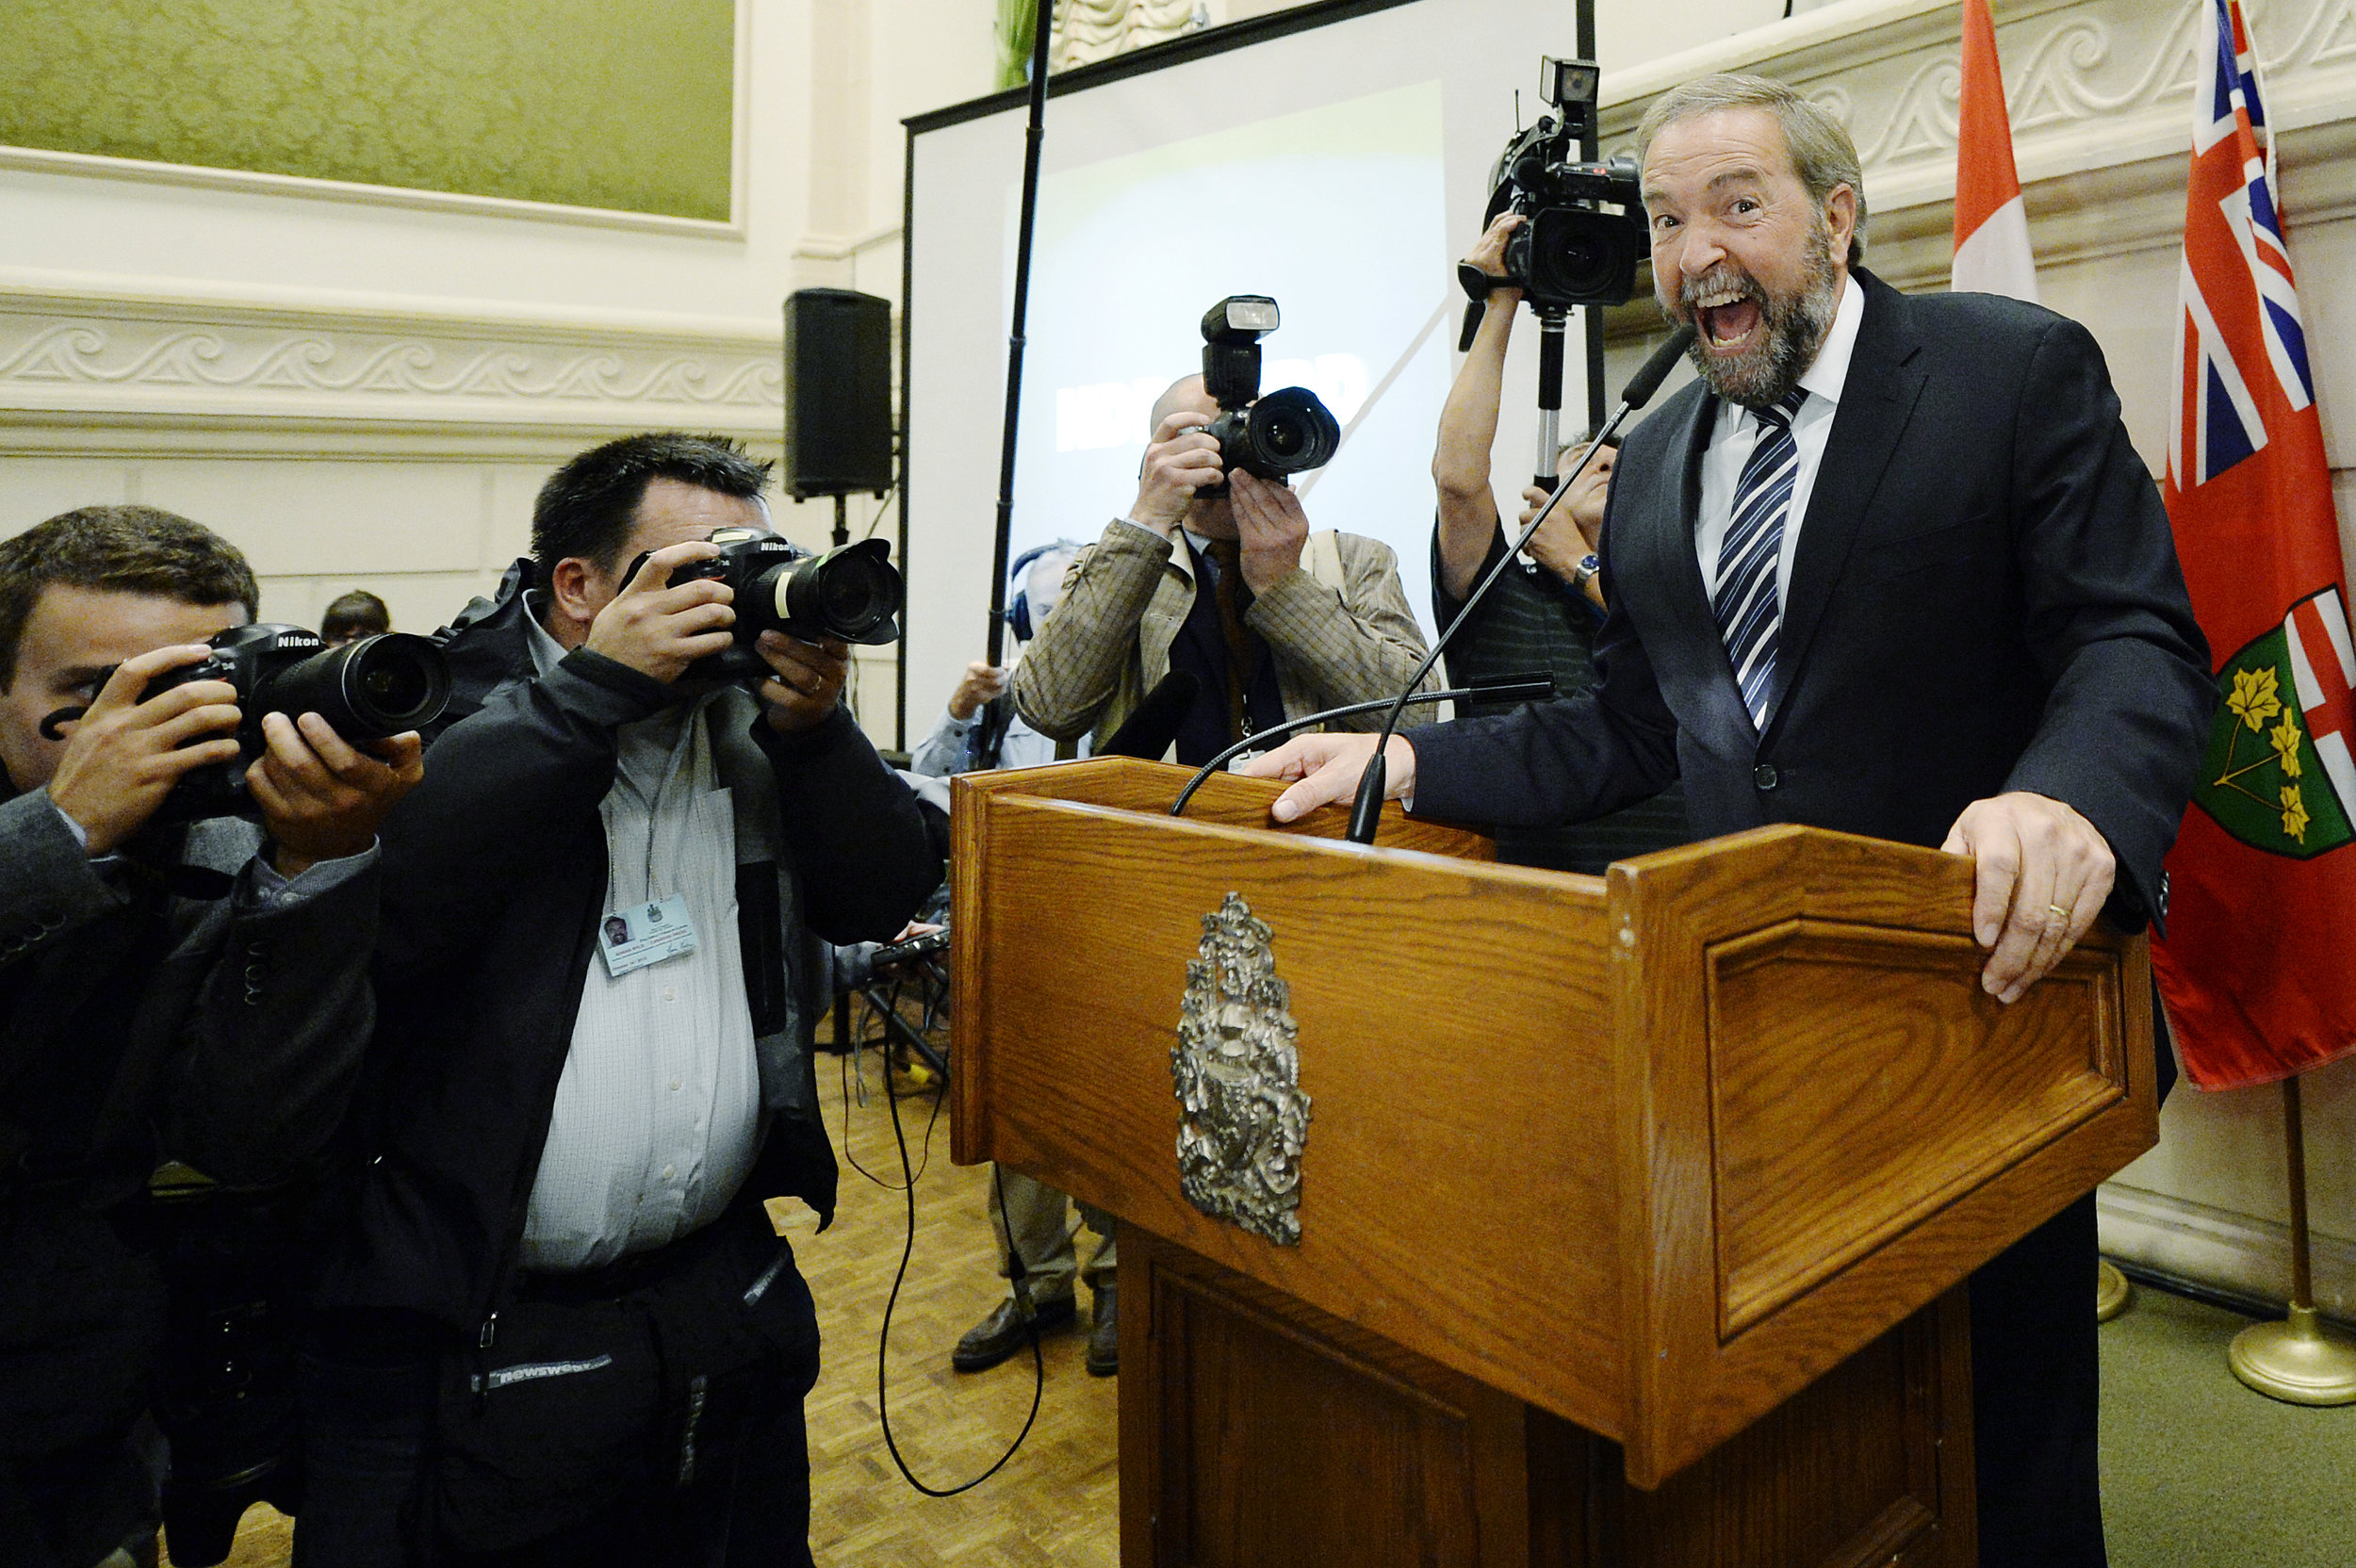 The leader of New Democratic Party of Canada Tom Mulcair cheers on the party members during NDP Caucus meeting. NDP has opened their doors to the media when they boycotted Conservative Party's caucus meeting.